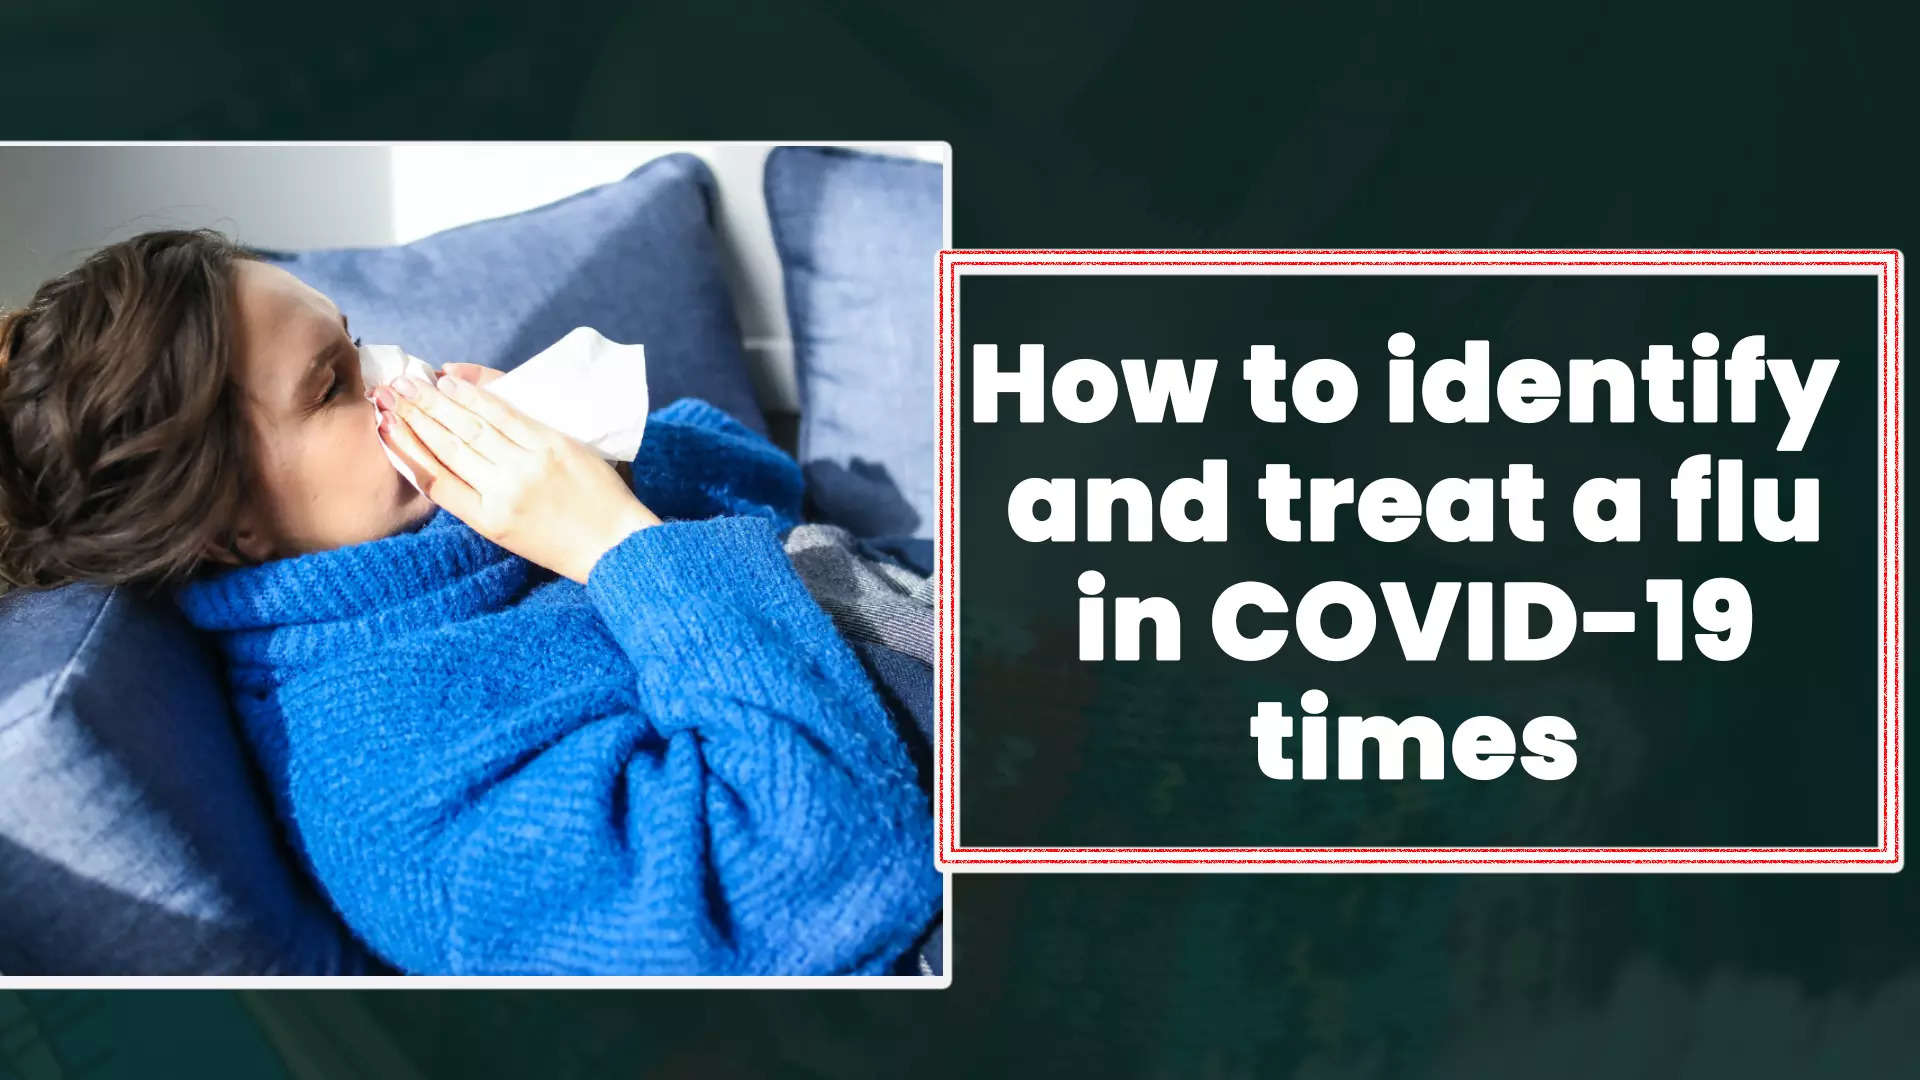 how-to-identify-and-treat-a-flu-in-covid-19-times